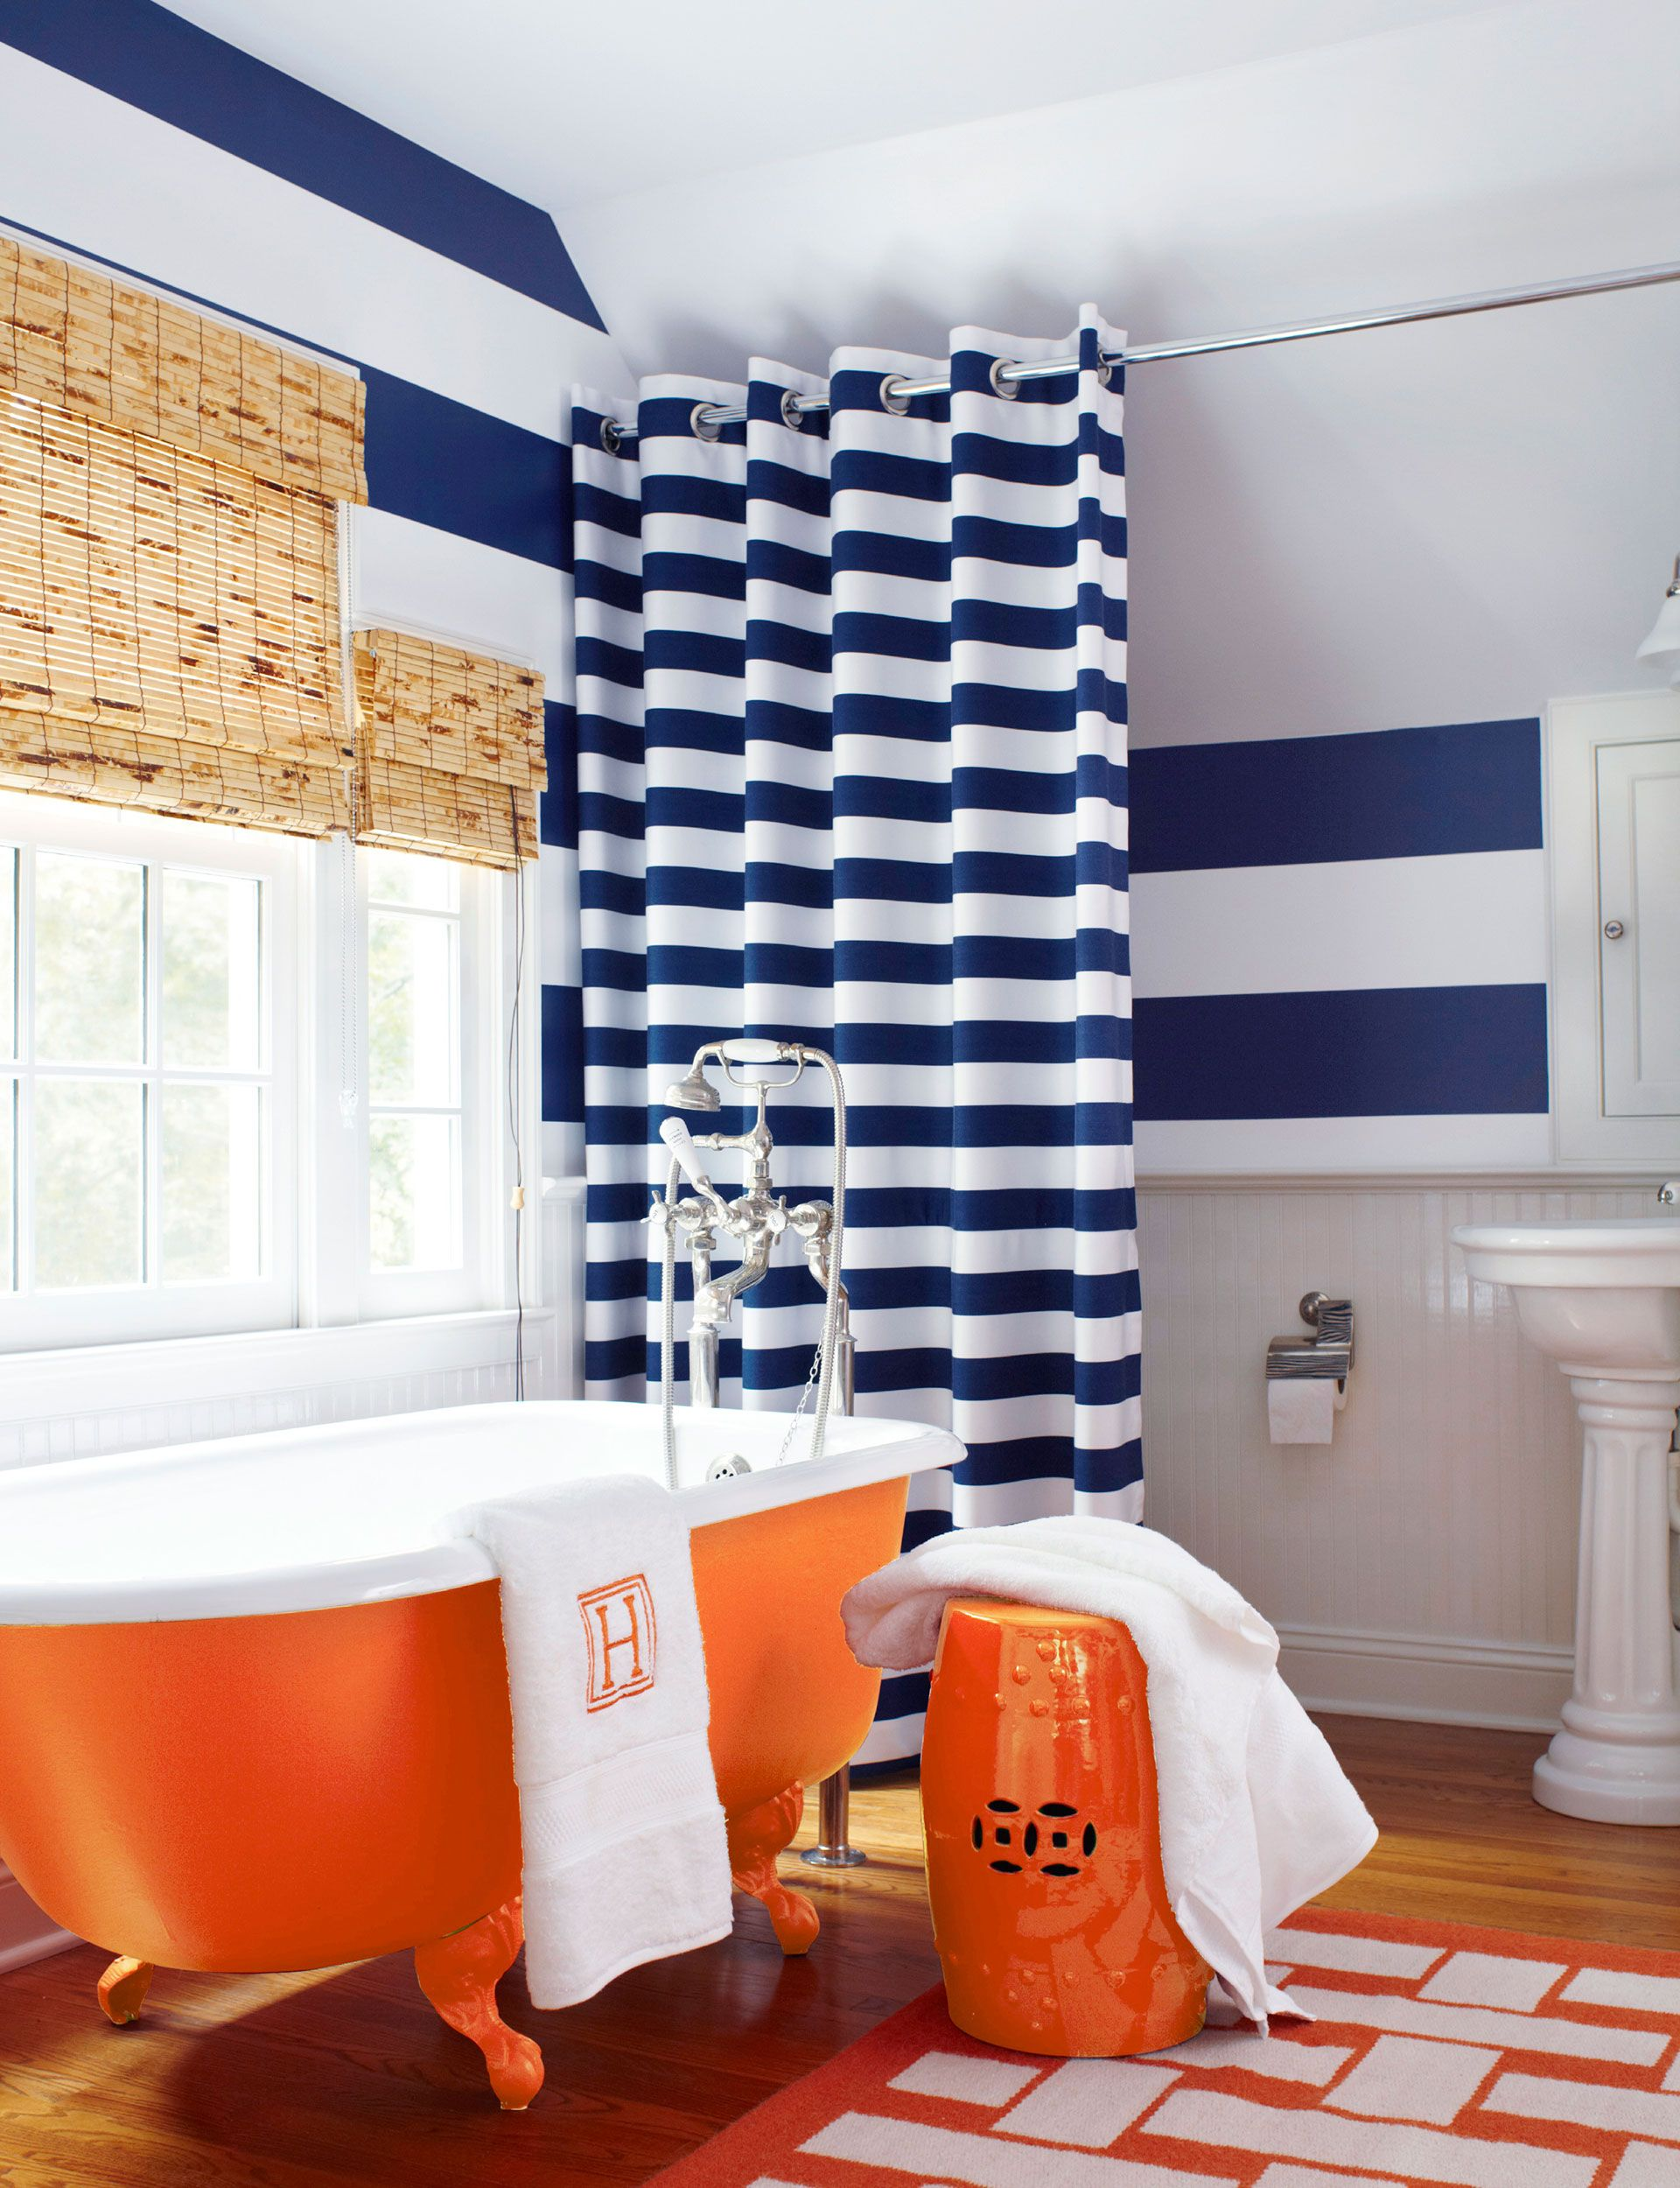 DIY Bathroom Updates And Decor - Cheap Ways To Renovate A Bathroom